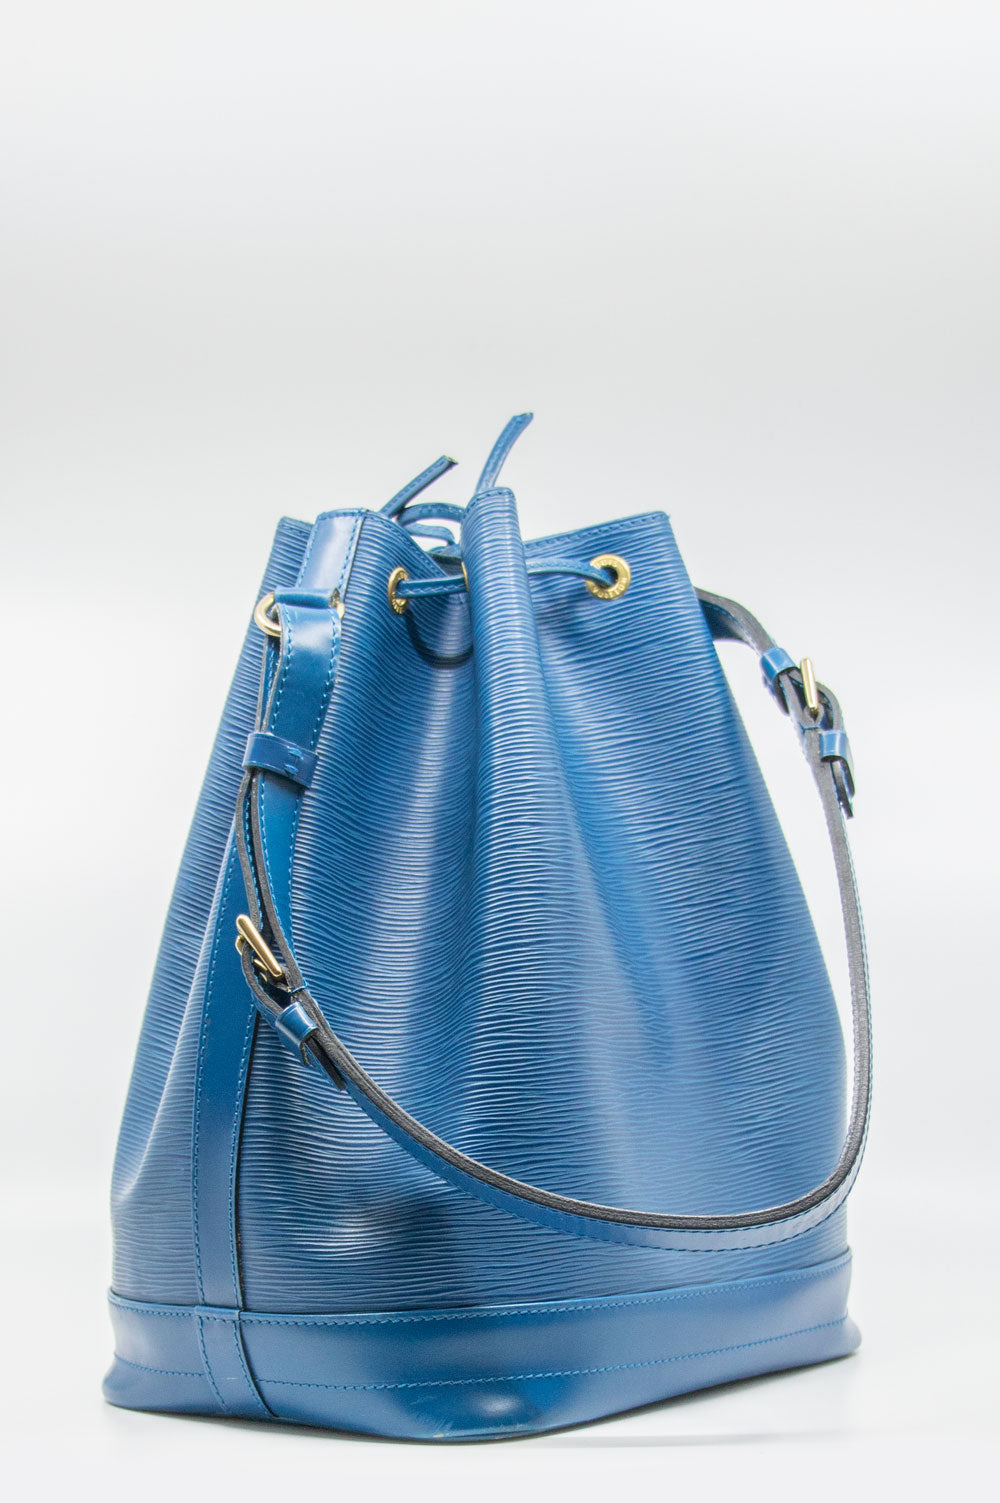 LOUIS VUITTON Grand Sac Noe Epi Blue D-Ring